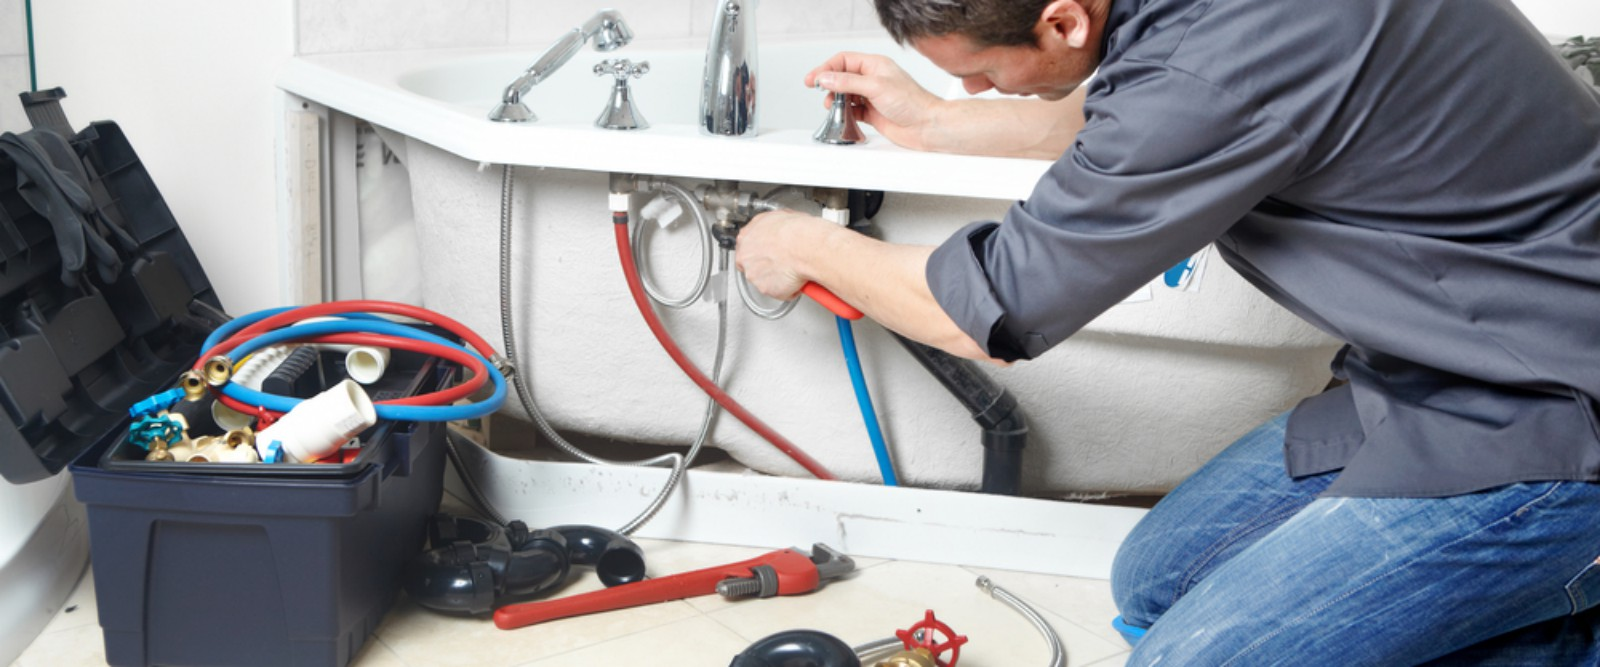 Certified Plumbers - Your Trusted, Local & Certified Plumbers